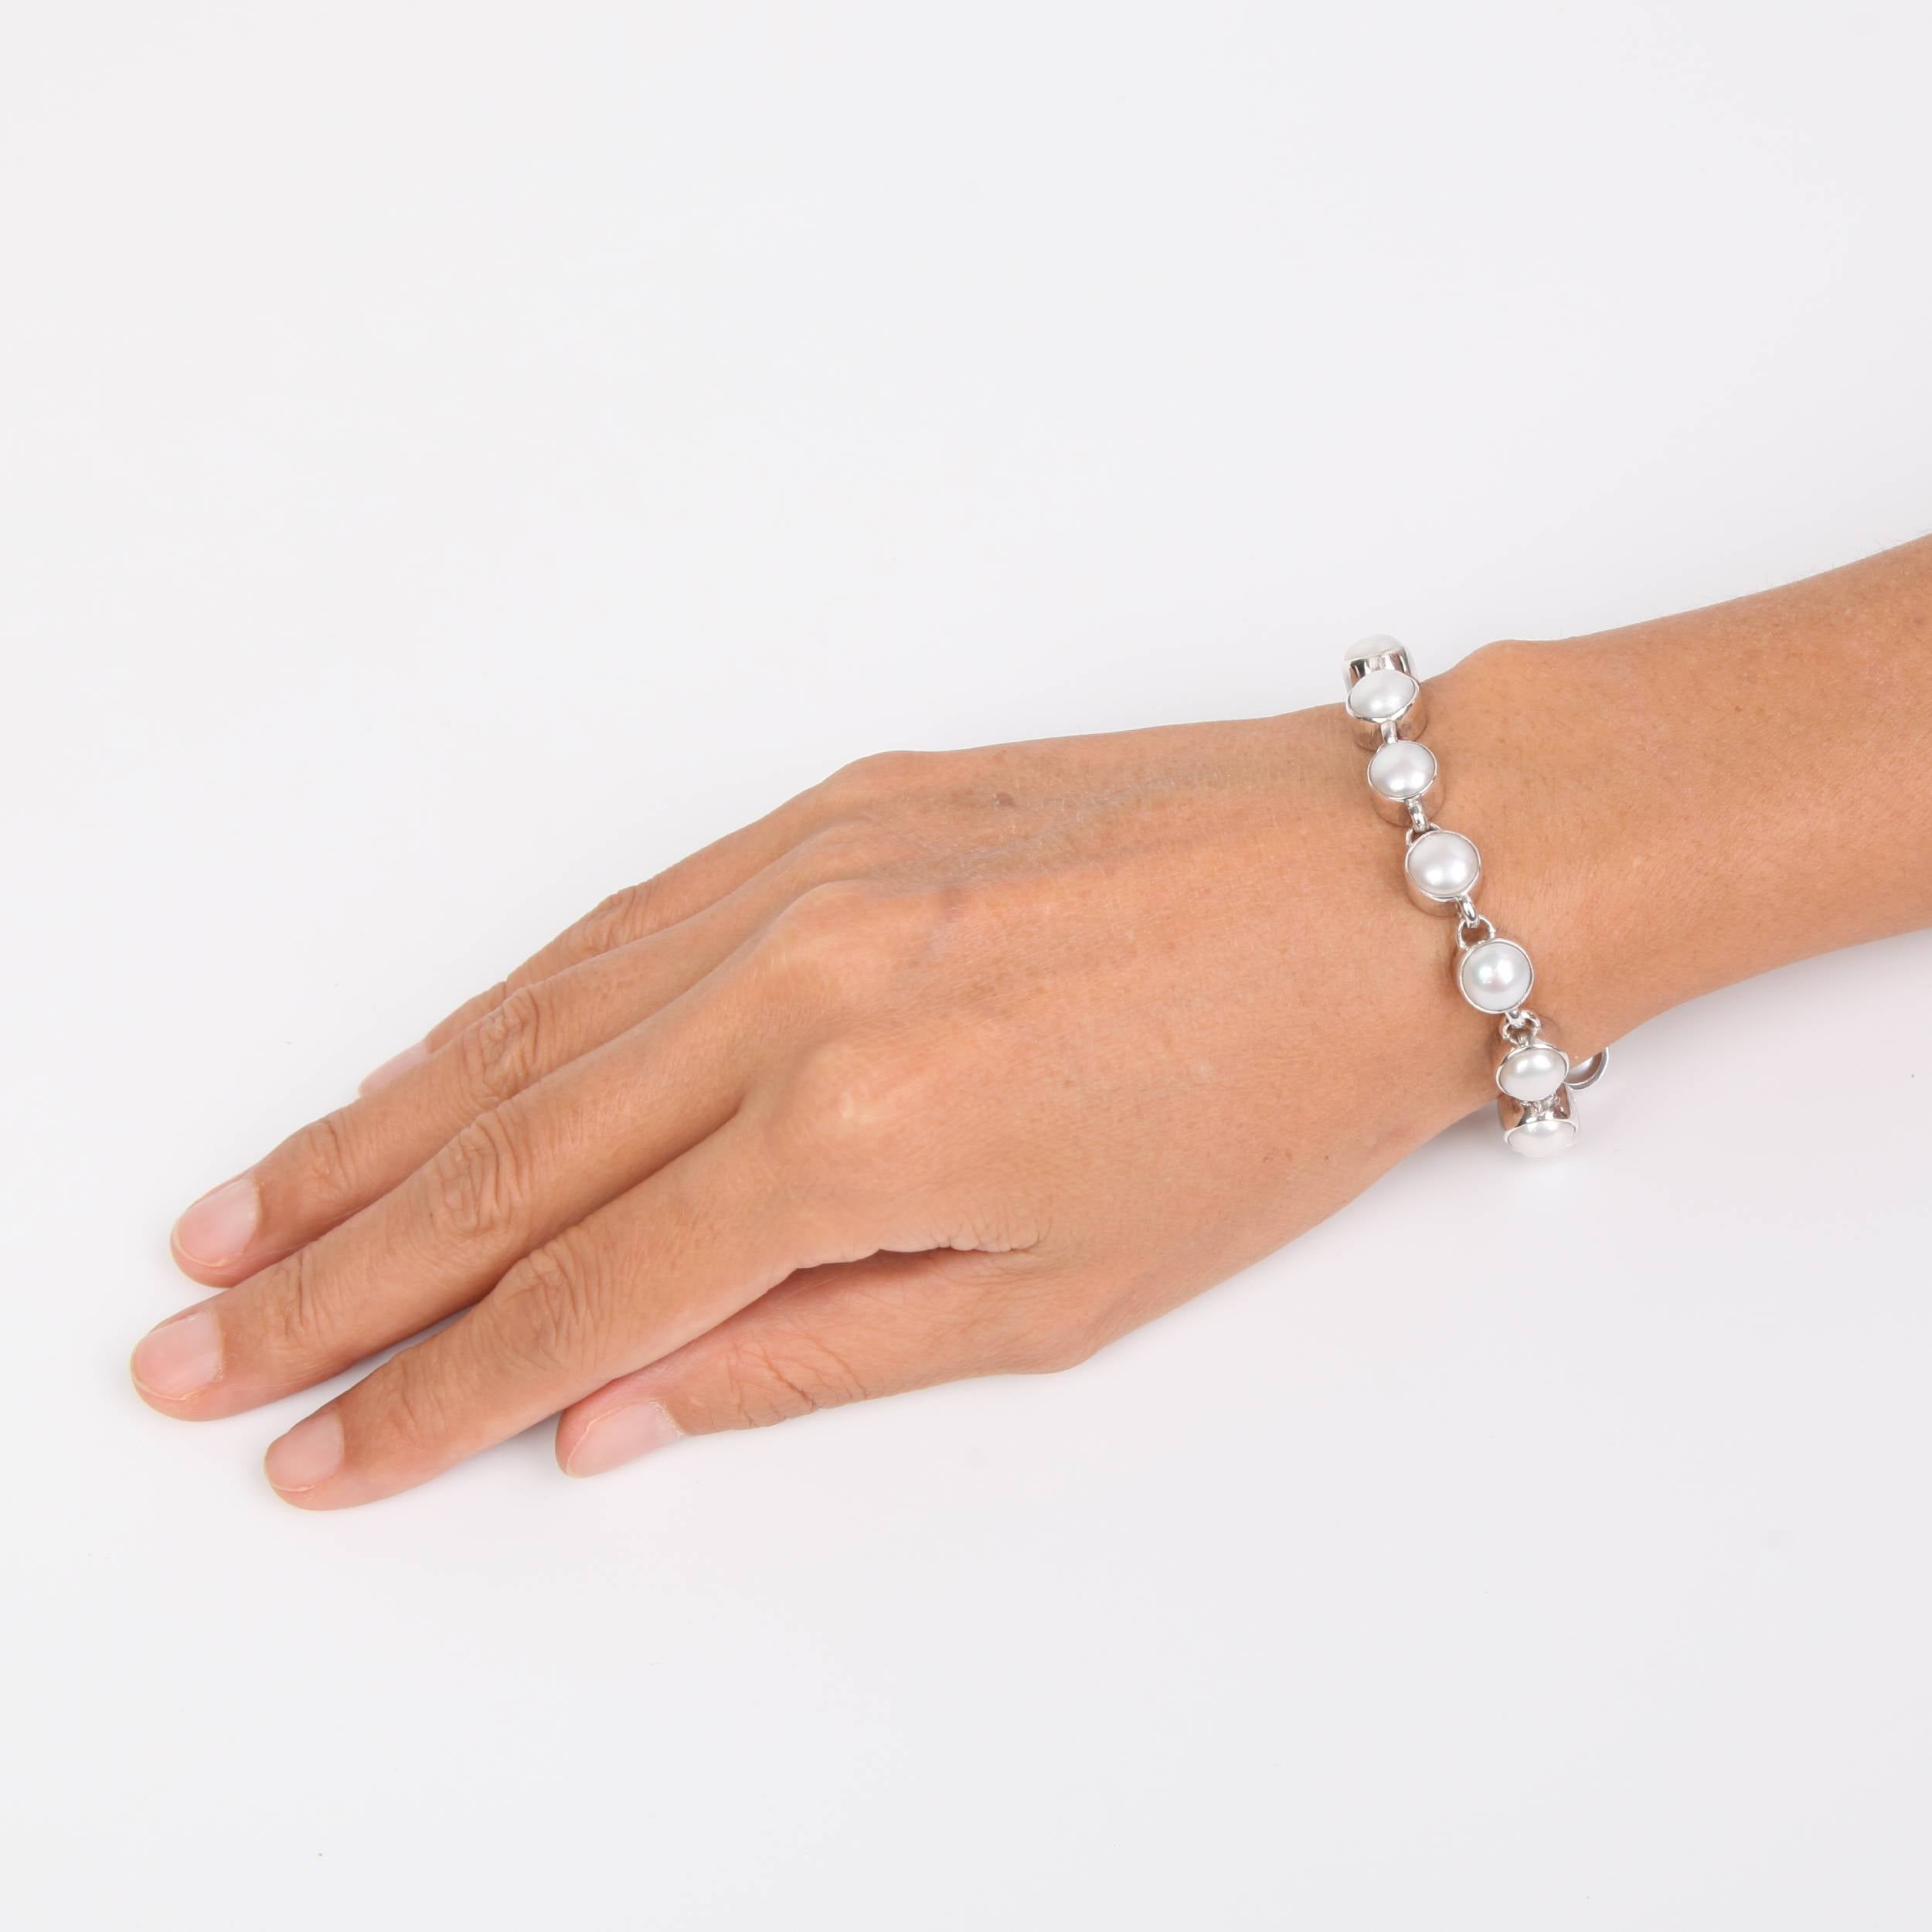 Sterling Silver Bracelet with Fresh Water Pearls Small